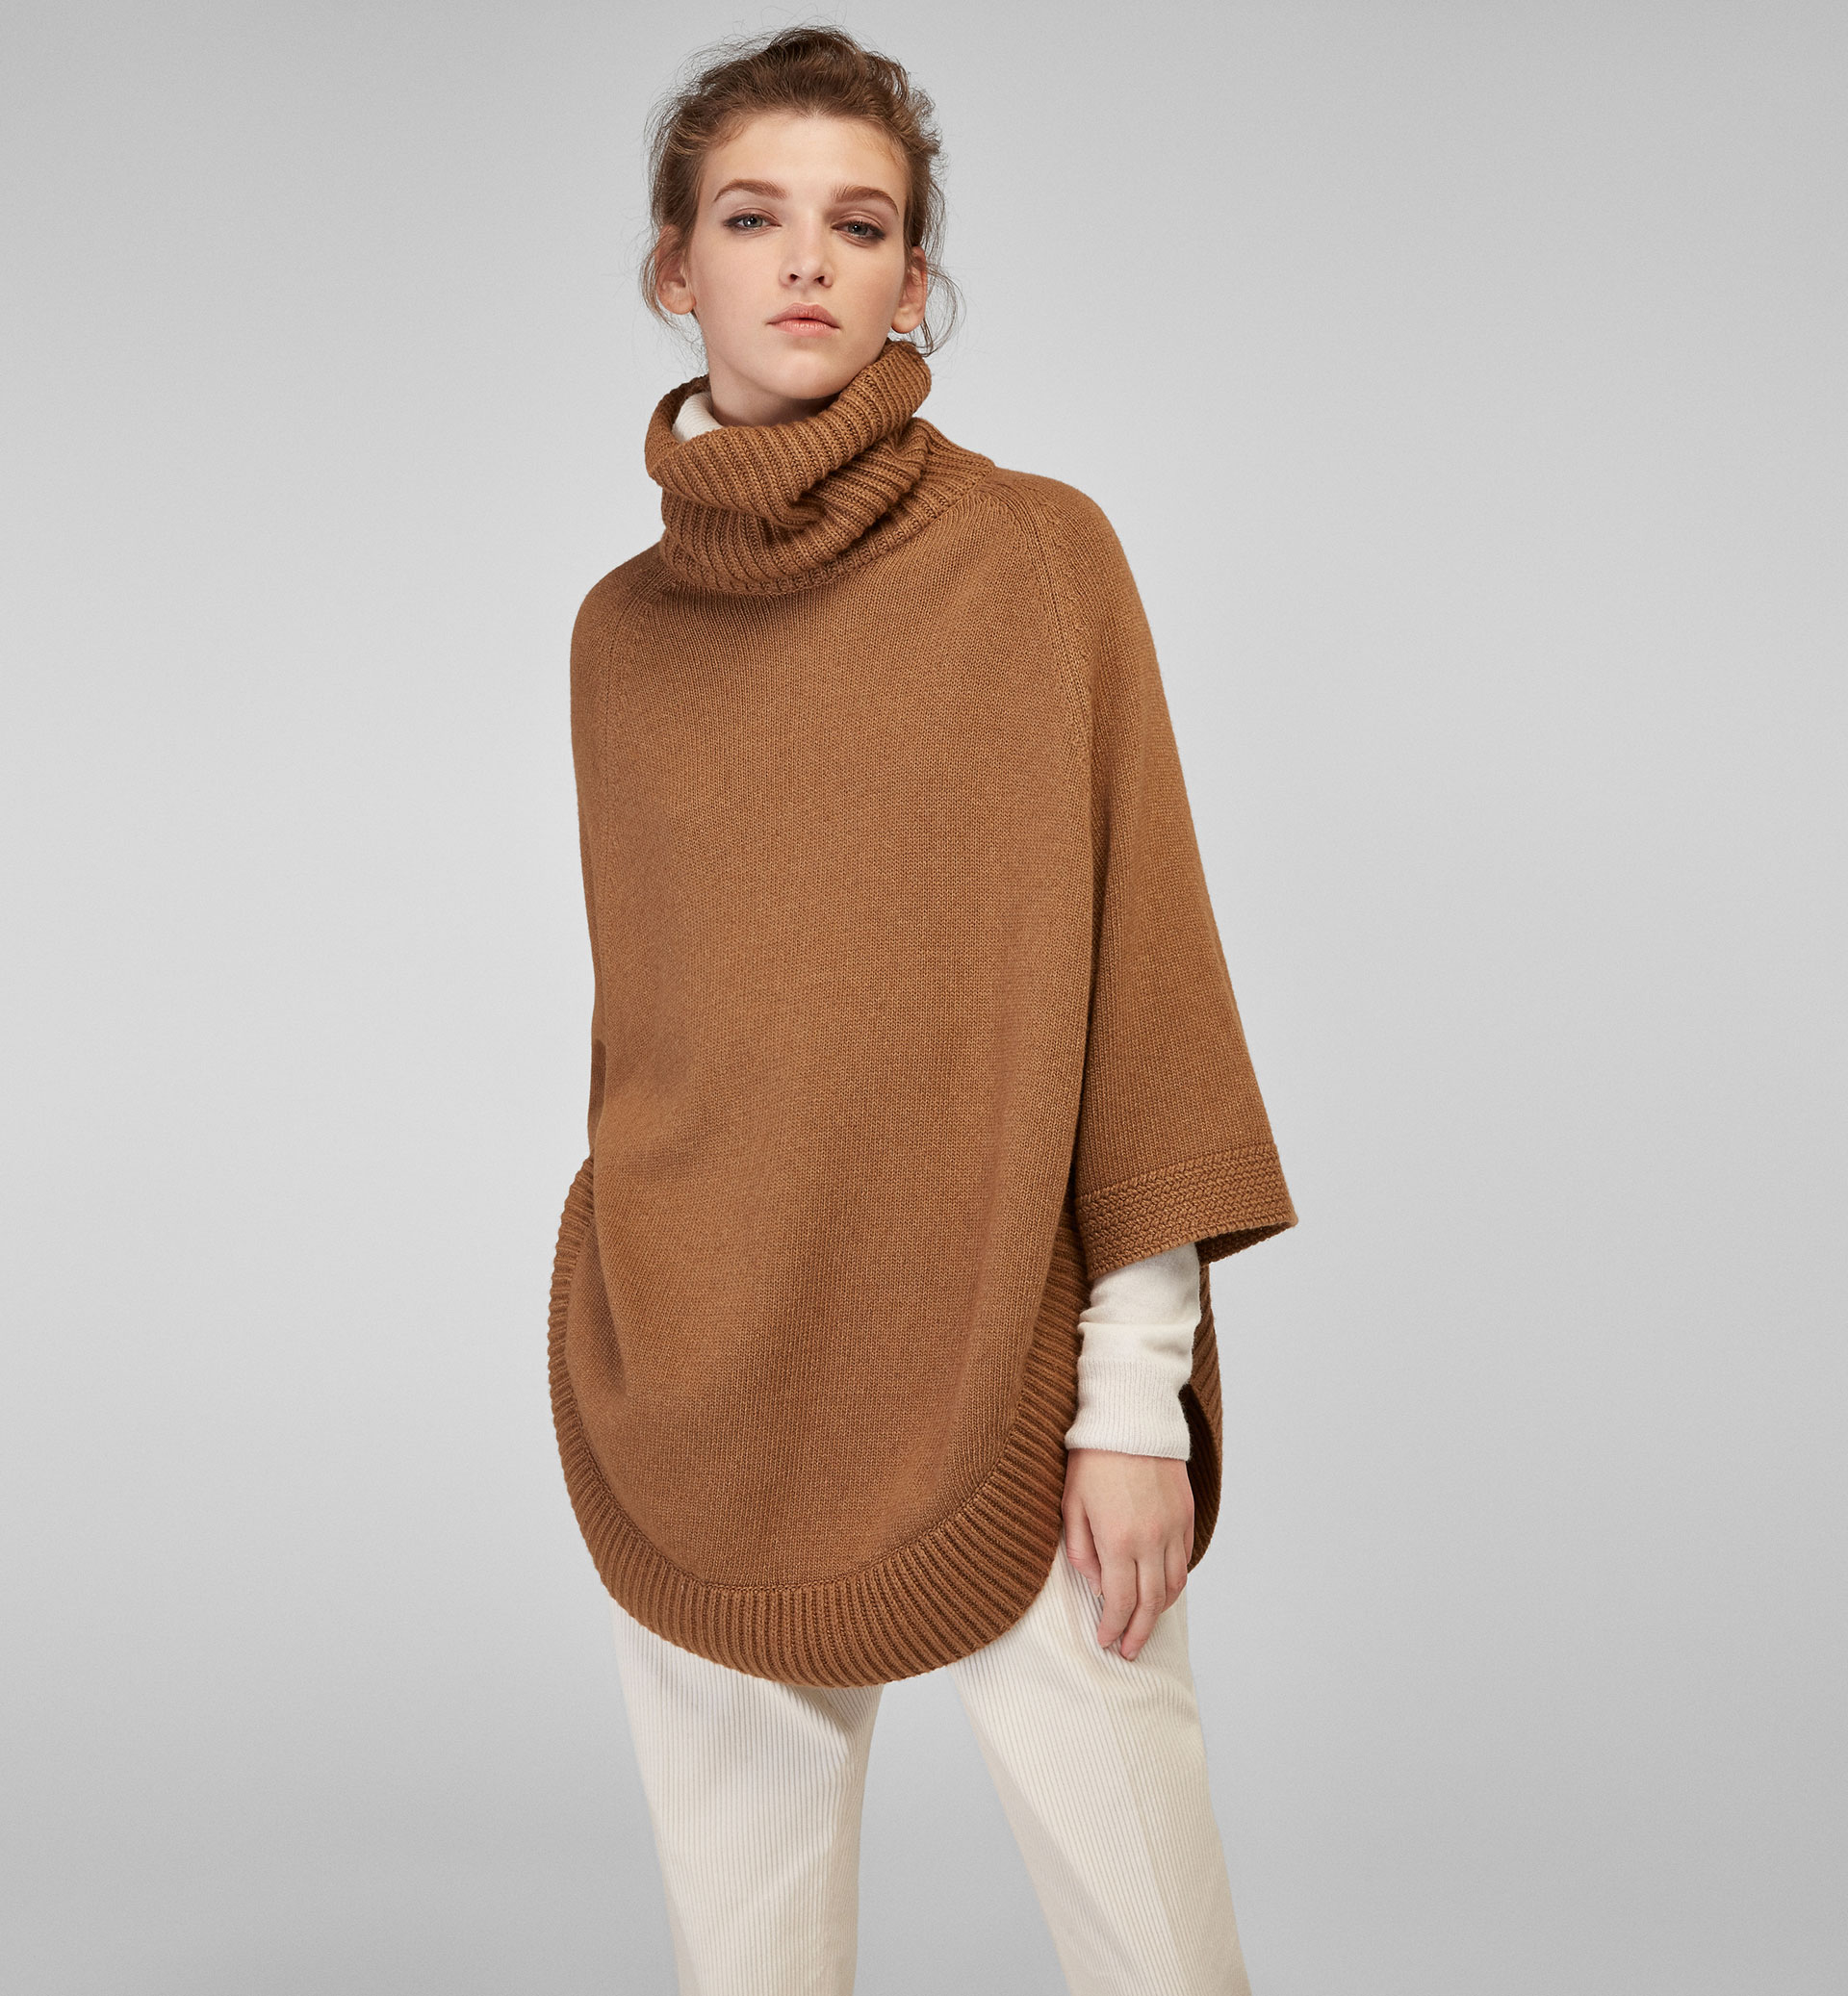 CAPE-STYLE SWEATER WITH ROUNDED HEM